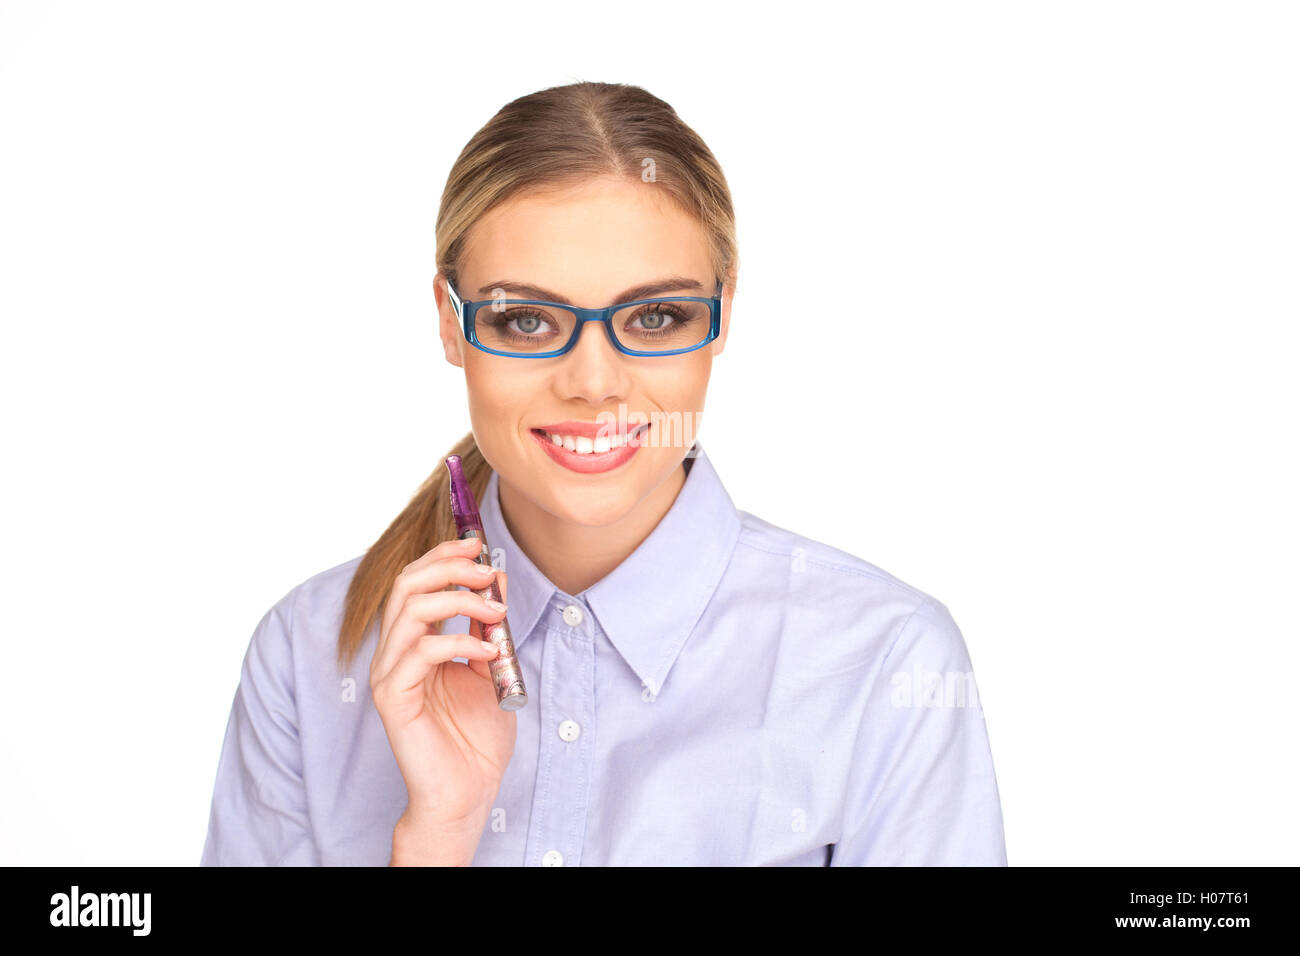 Young Woman Smokin Electic Cigarette - Stock Image